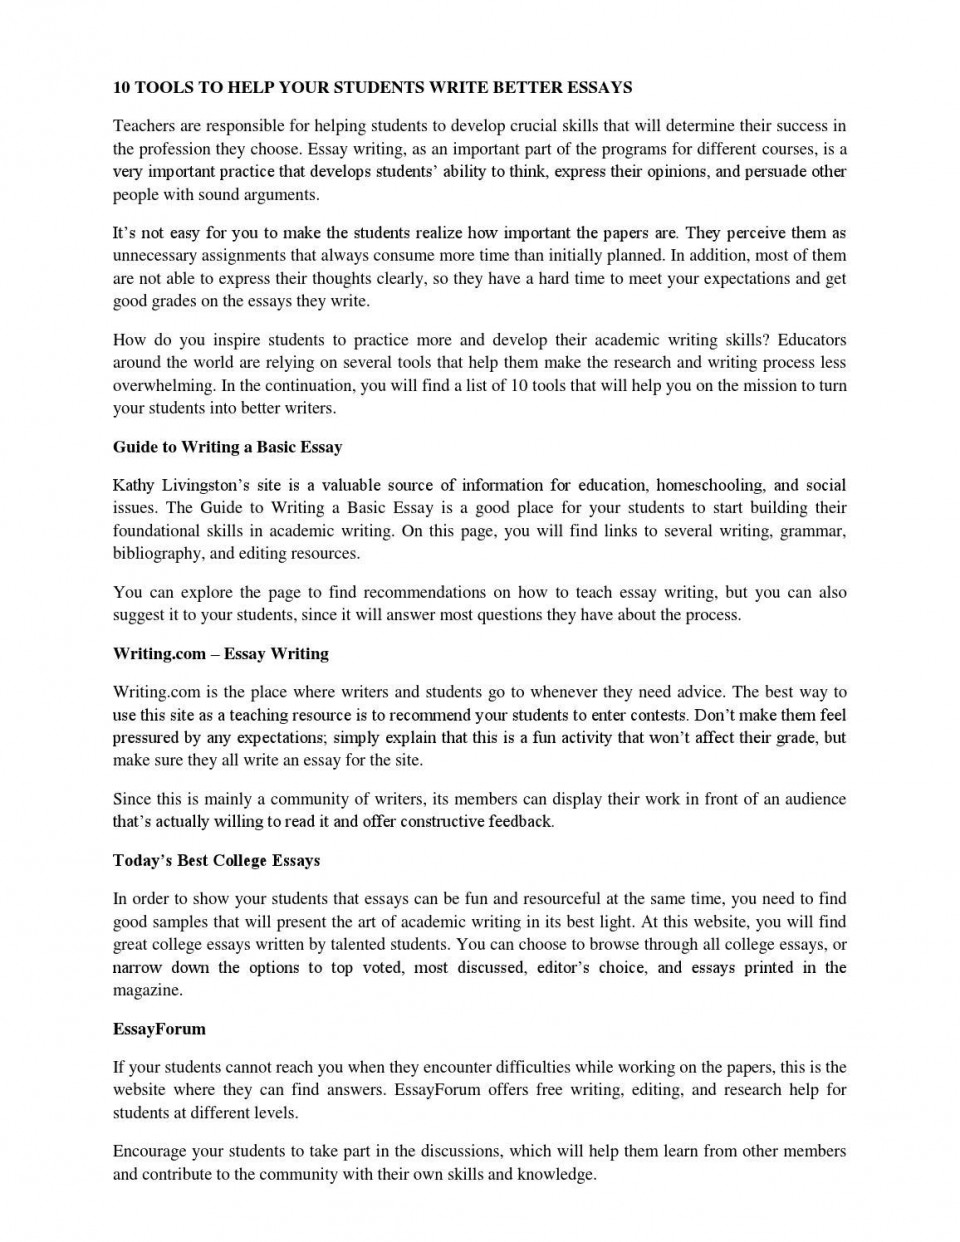 017 Research Paper Online Papers Free Essay Writing Websites Reviews For Students Editing Page Example Fearsome Find Download Russian 960